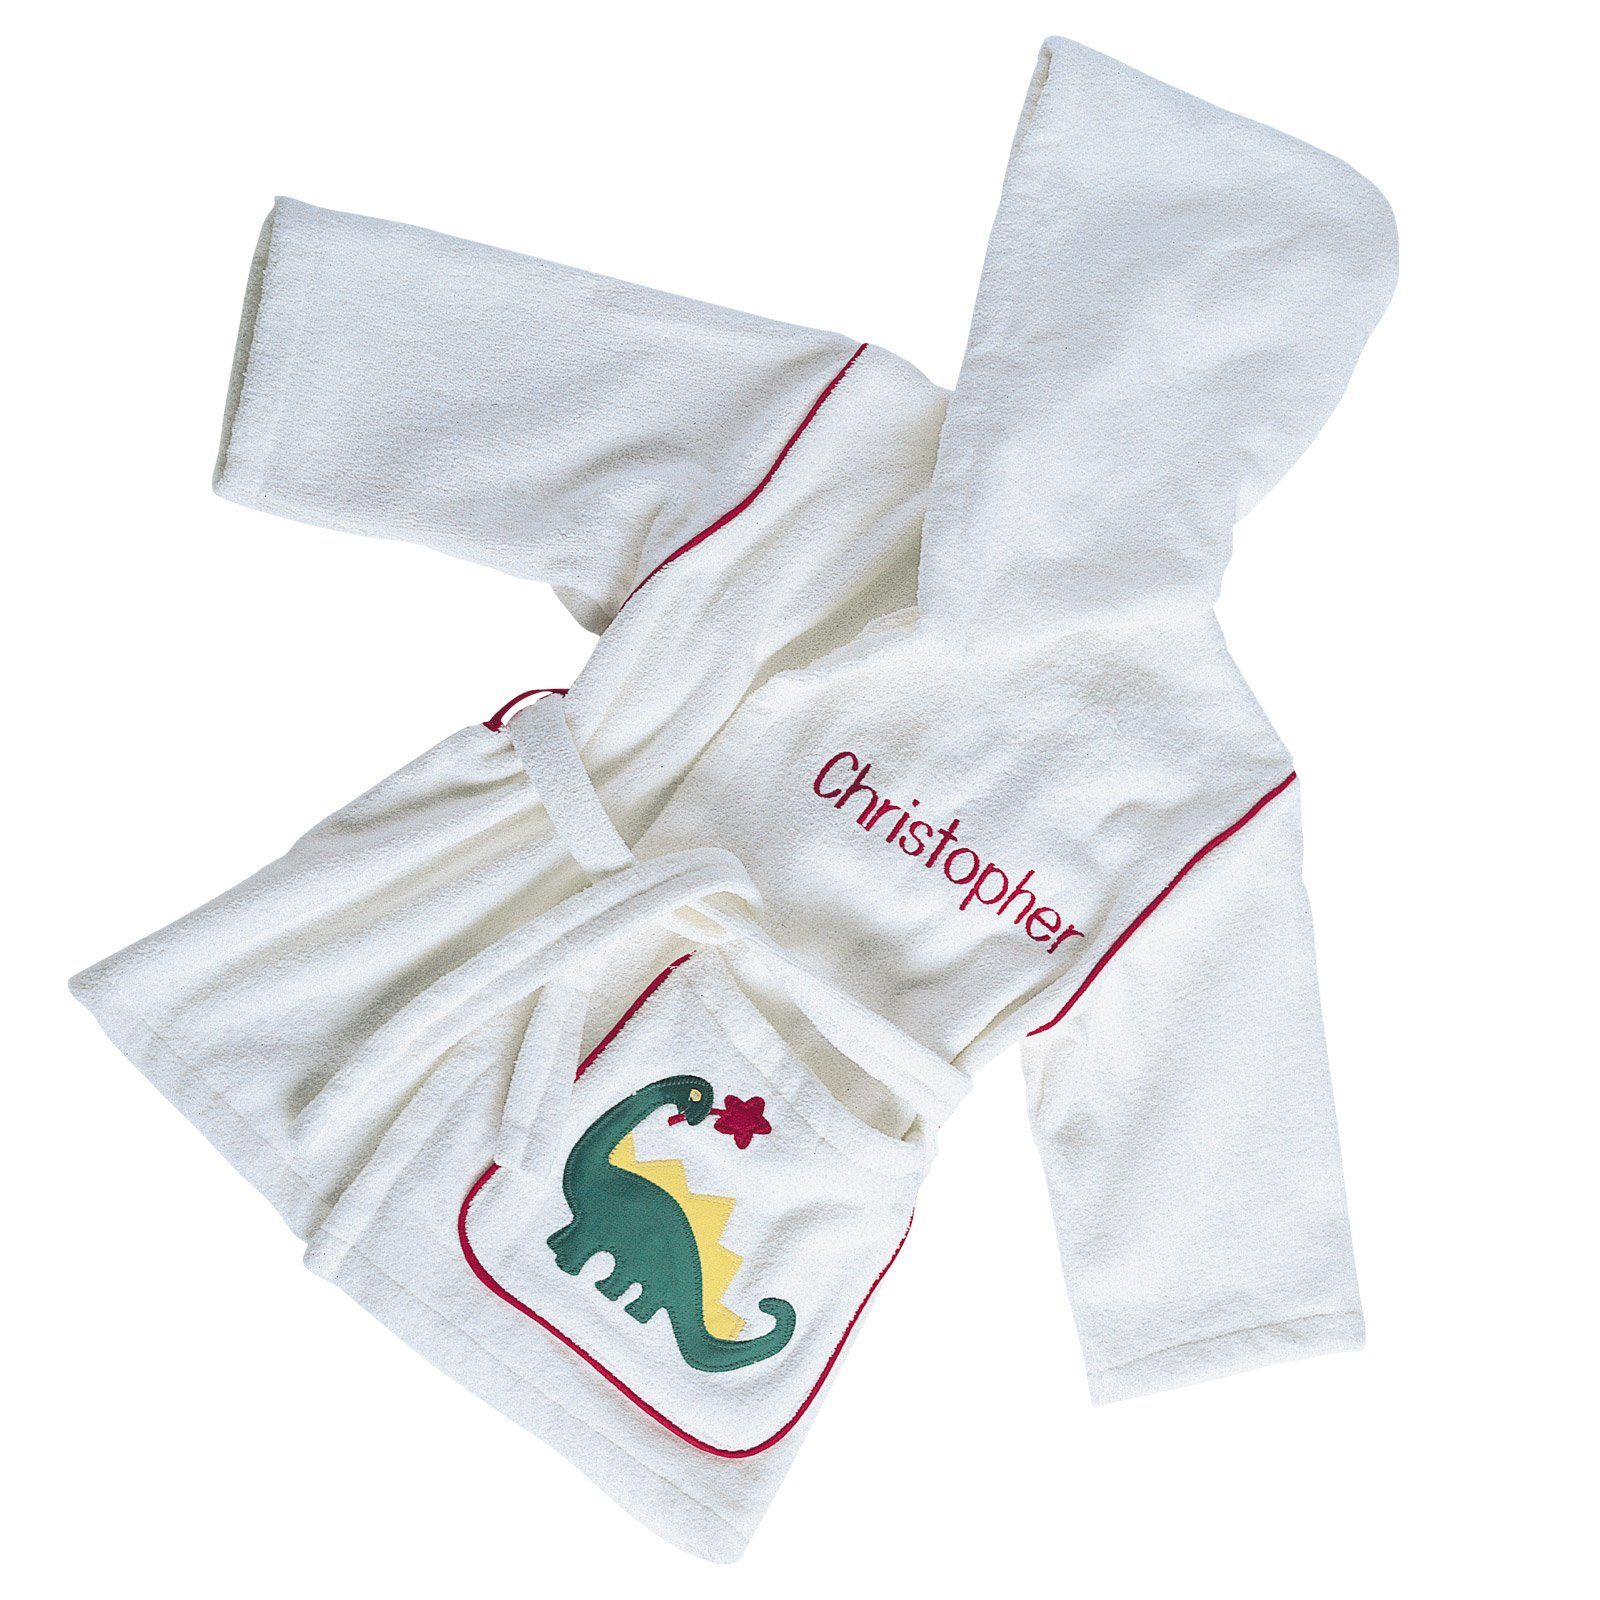 Jack and Jill Baby Robes - Luxury Bath Robes - Adorable 100% cotton robes made in the USA are soft and absorbent to keep your pride and joy warm and cozy. #BabyRobe #Terry